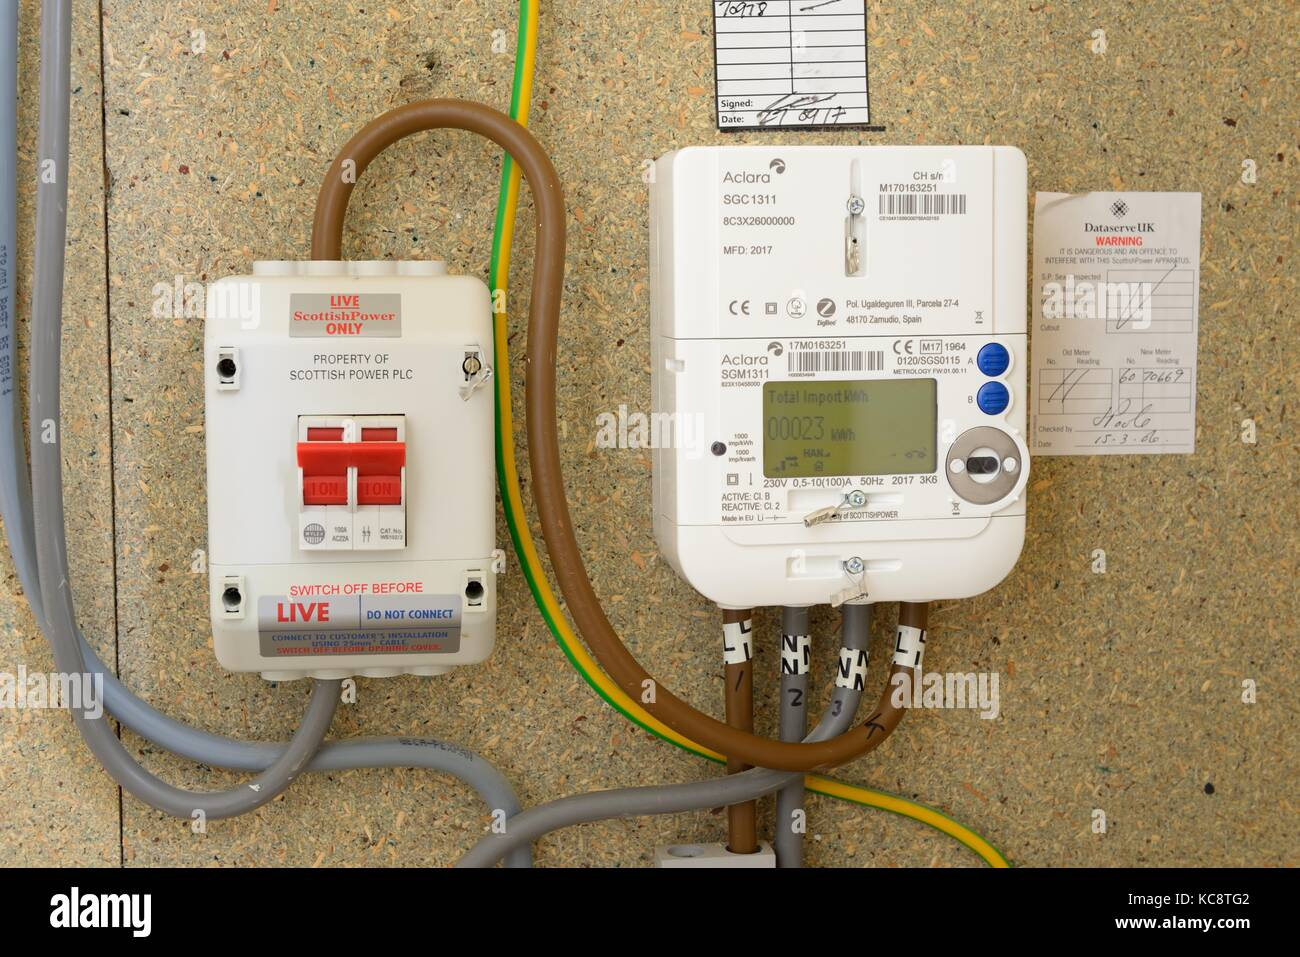 Electric Meter Technology : Smart meter home stock photos